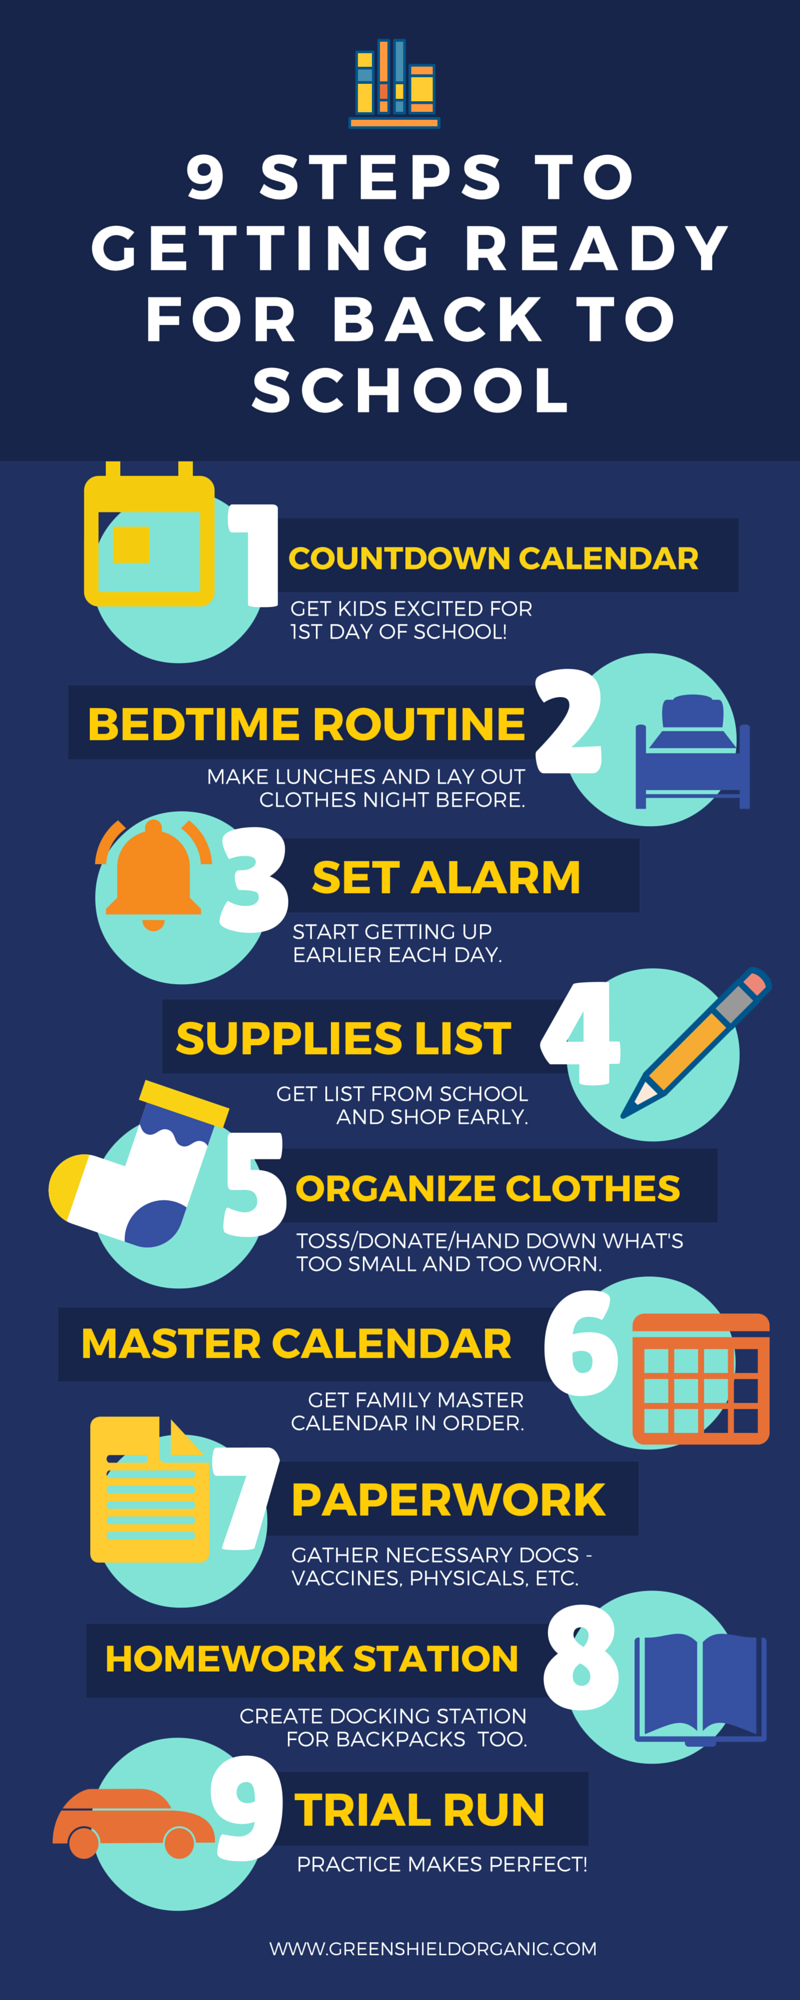 9 Steps to Get Ready for Back to School